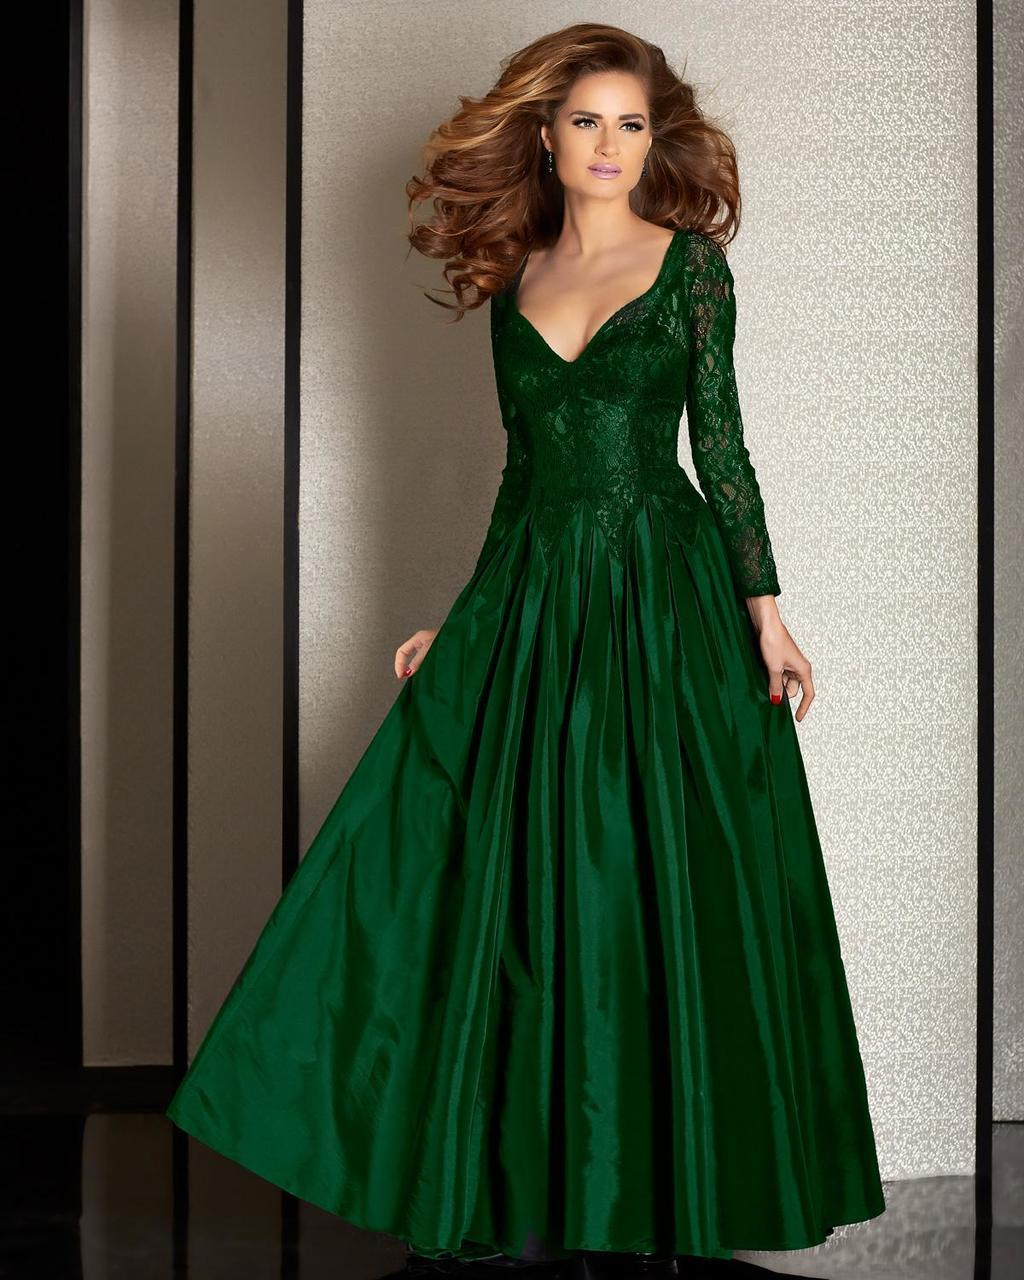 Clarisse - M6205 Long Sleeve Illusion Lace Gown in Green